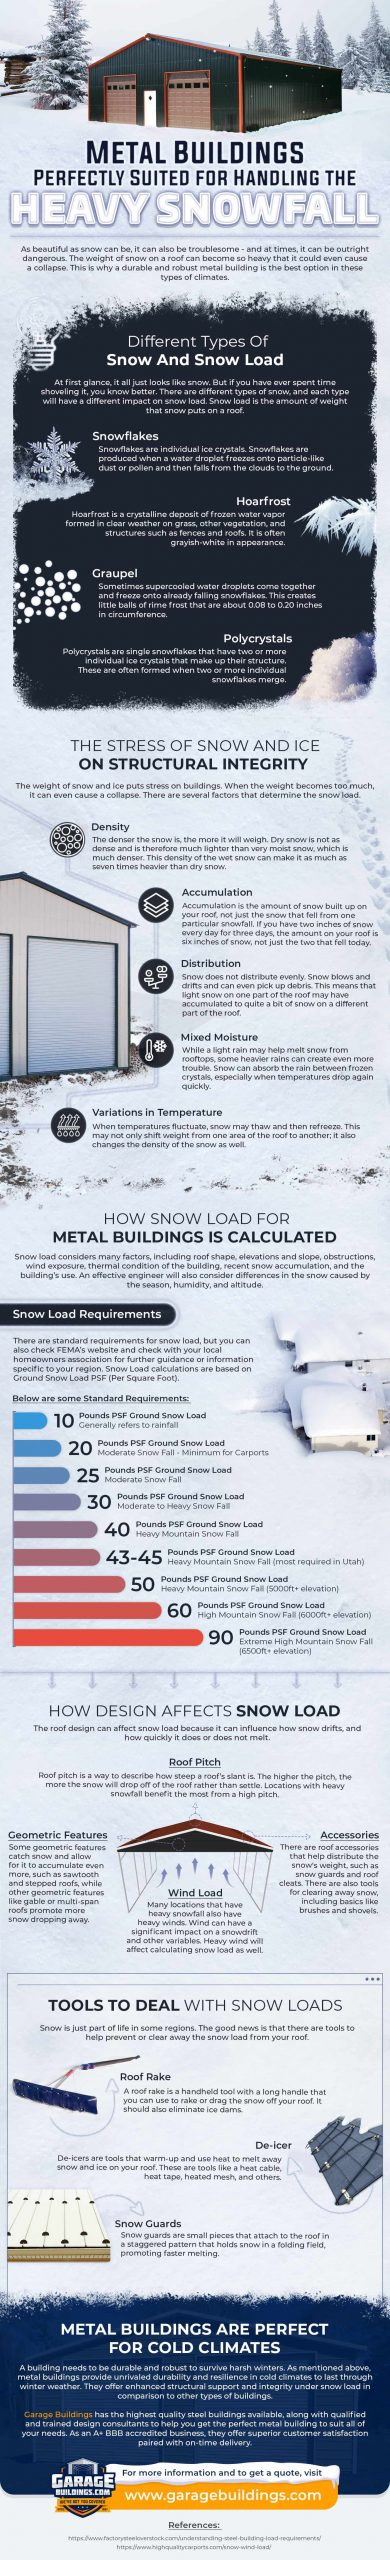 Metal Buildings - Perfectly Suited for Handling the Heavy Snowfall